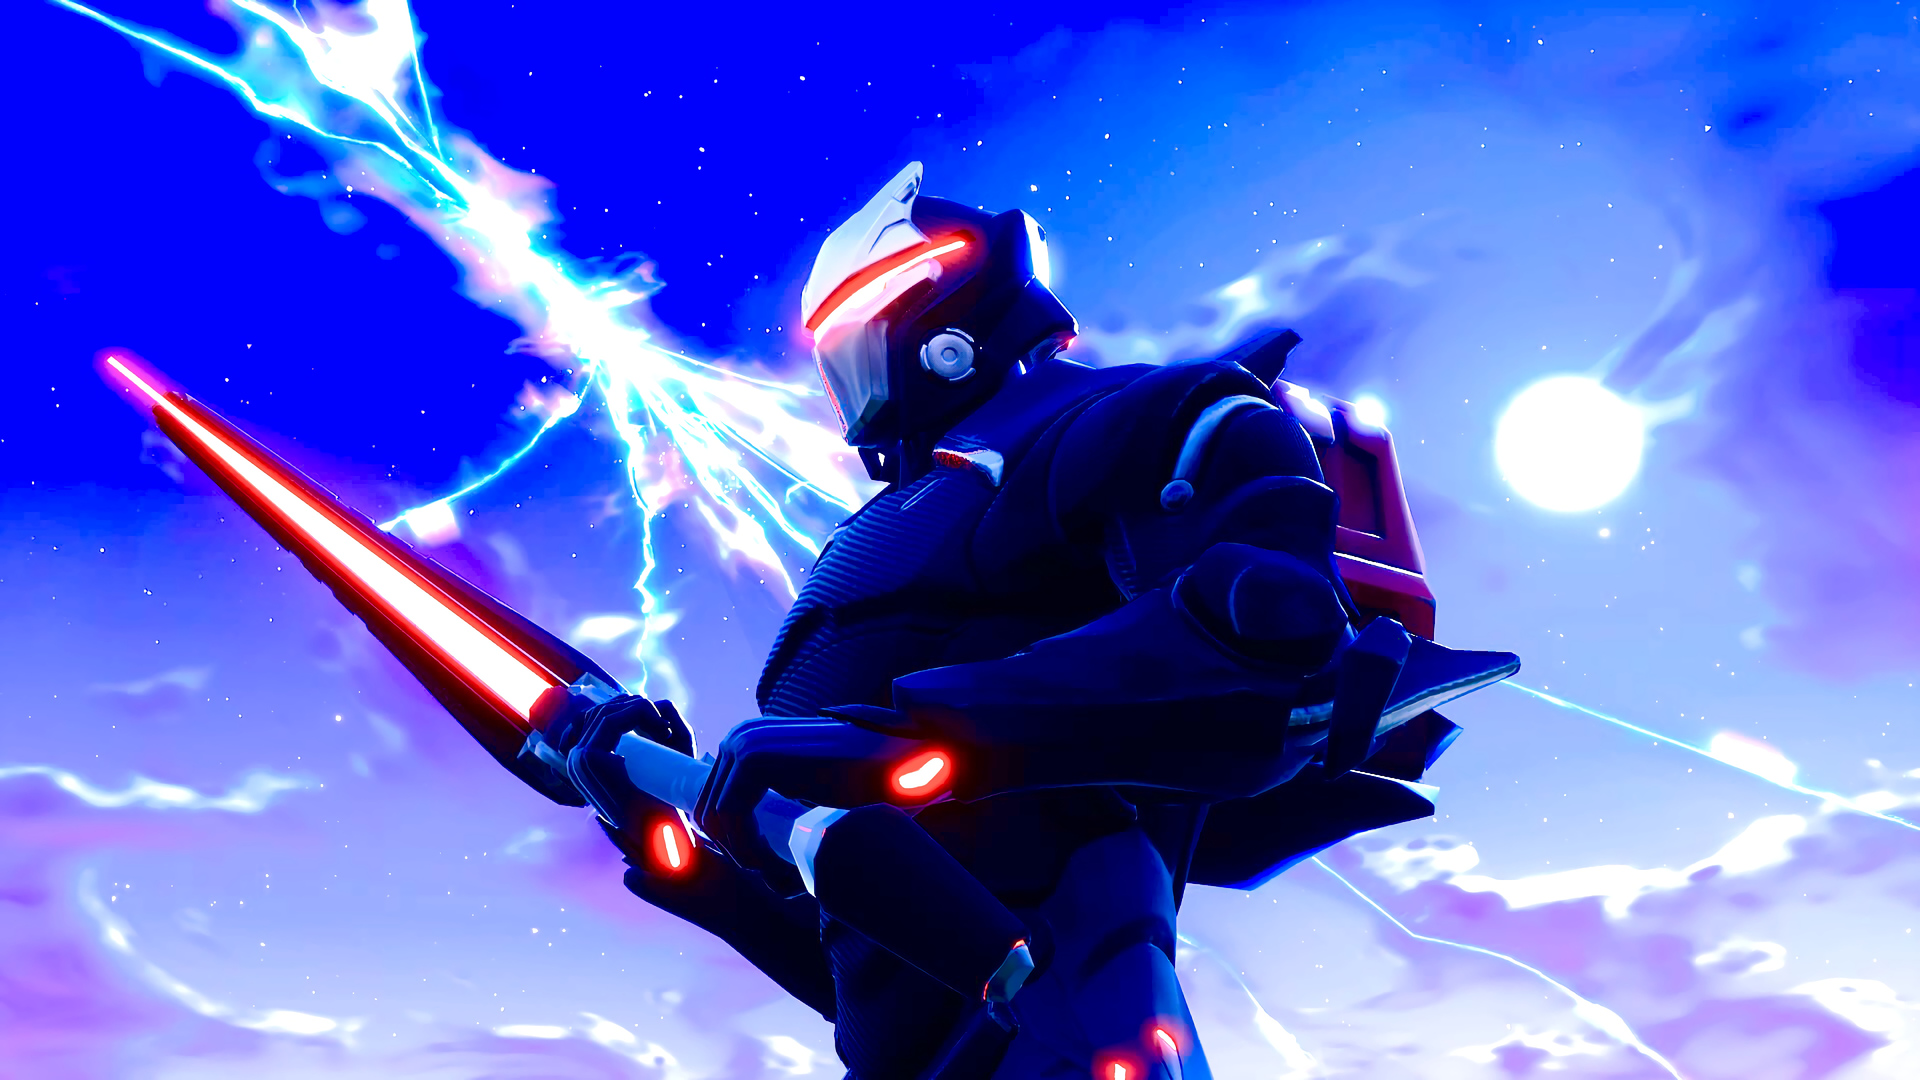 1920x1080 Fortnite Omega 4k Laptop Full HD 1080P HD 4k Wallpapers, Images, Backgrounds, Photos ...